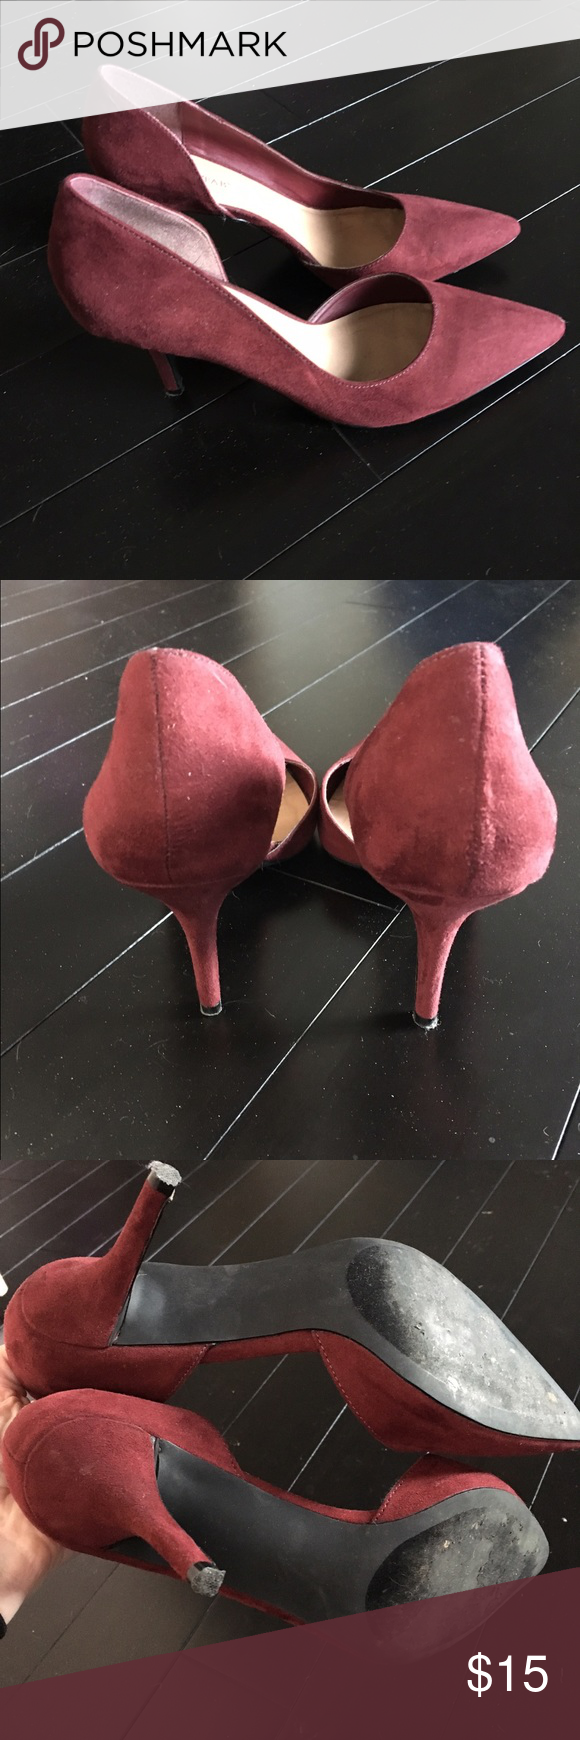 JustFab Burgundy D'Orsay Pumps Beautiful faux suede pumps. Only worn once. I have flat feet and this style of shoe just doesn't have the support I need. In great condition. JustFab Shoes Heels